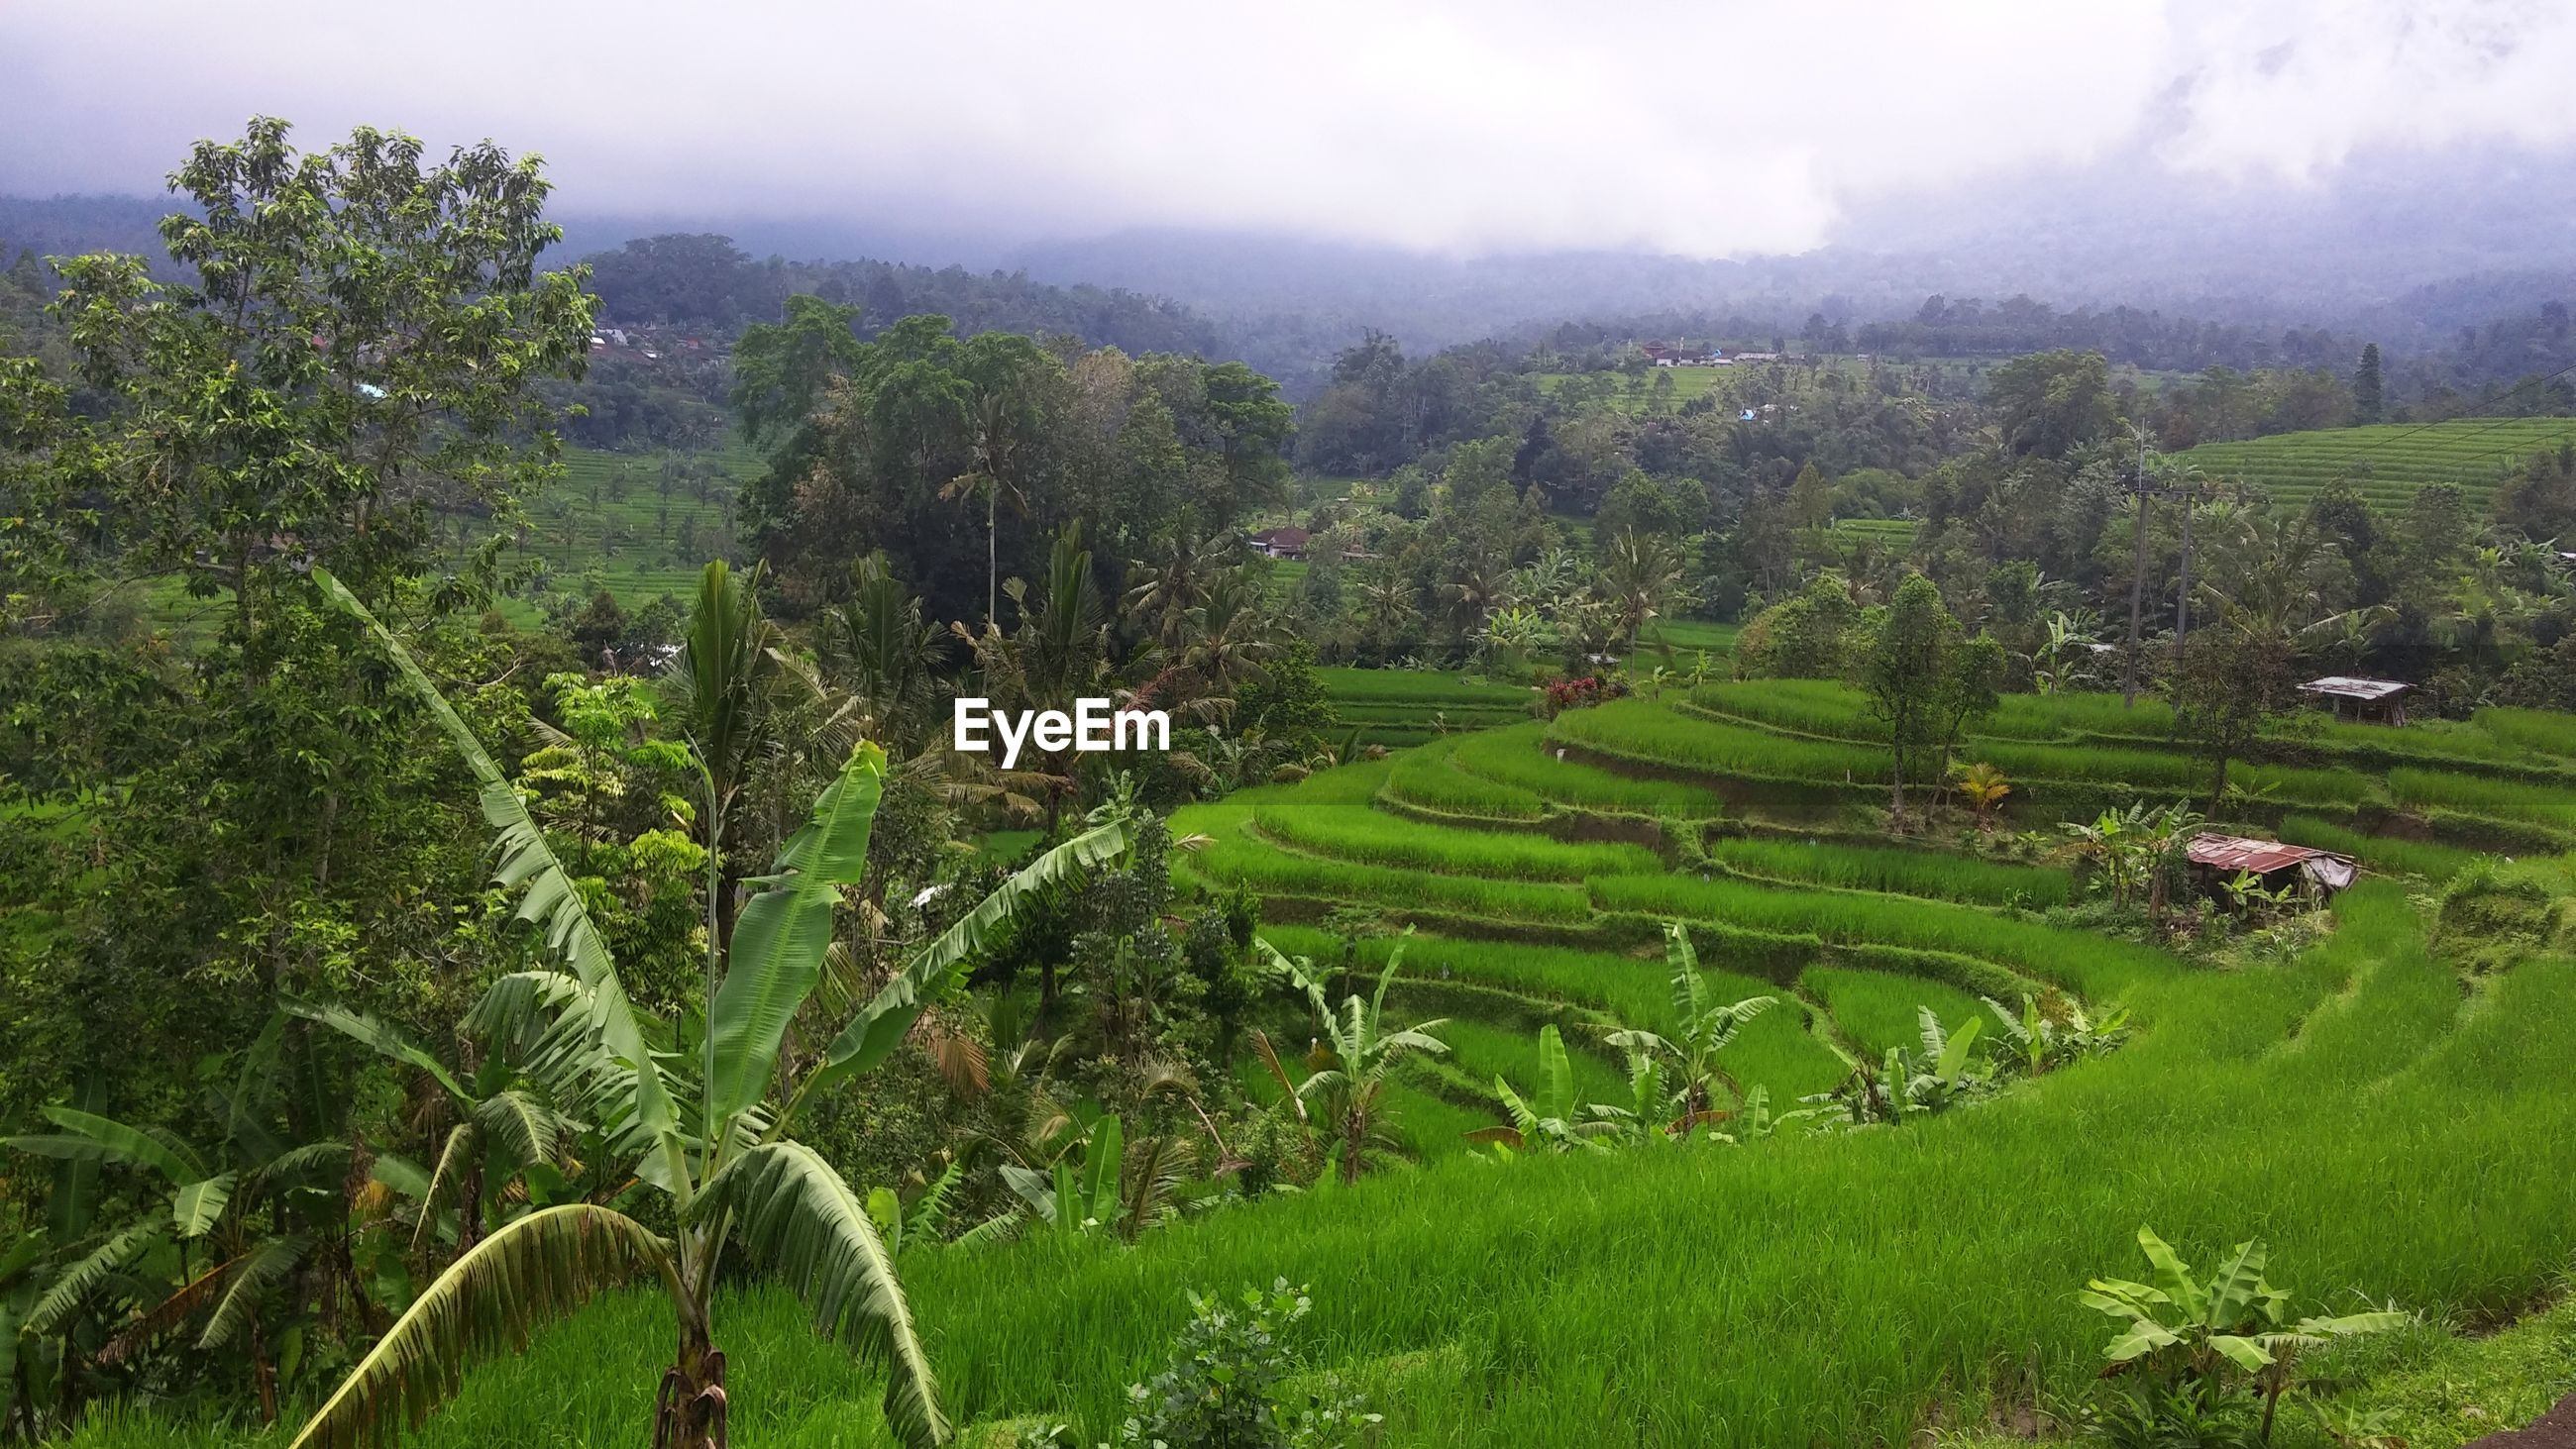 SCENIC VIEW OF RICE FIELD AGAINST TREES